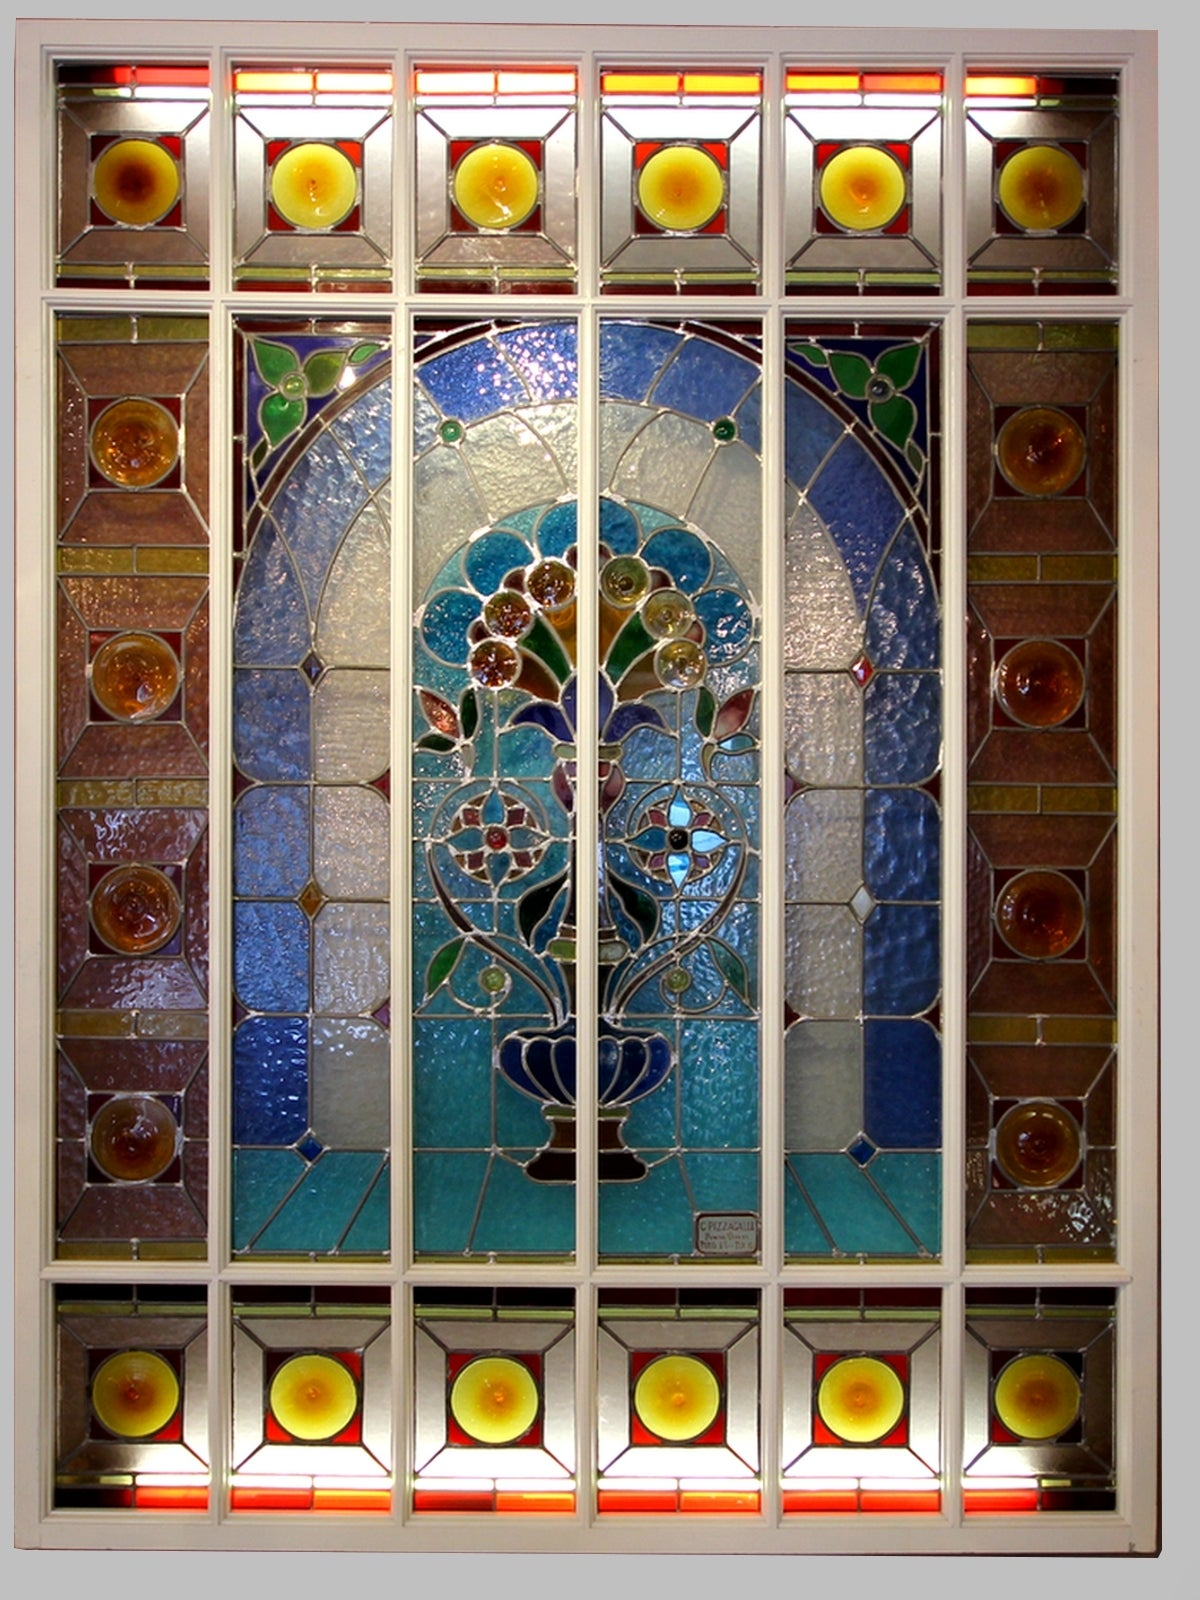 Wood two stained glass panels by carlo pizzagalli circa 1900 for sale